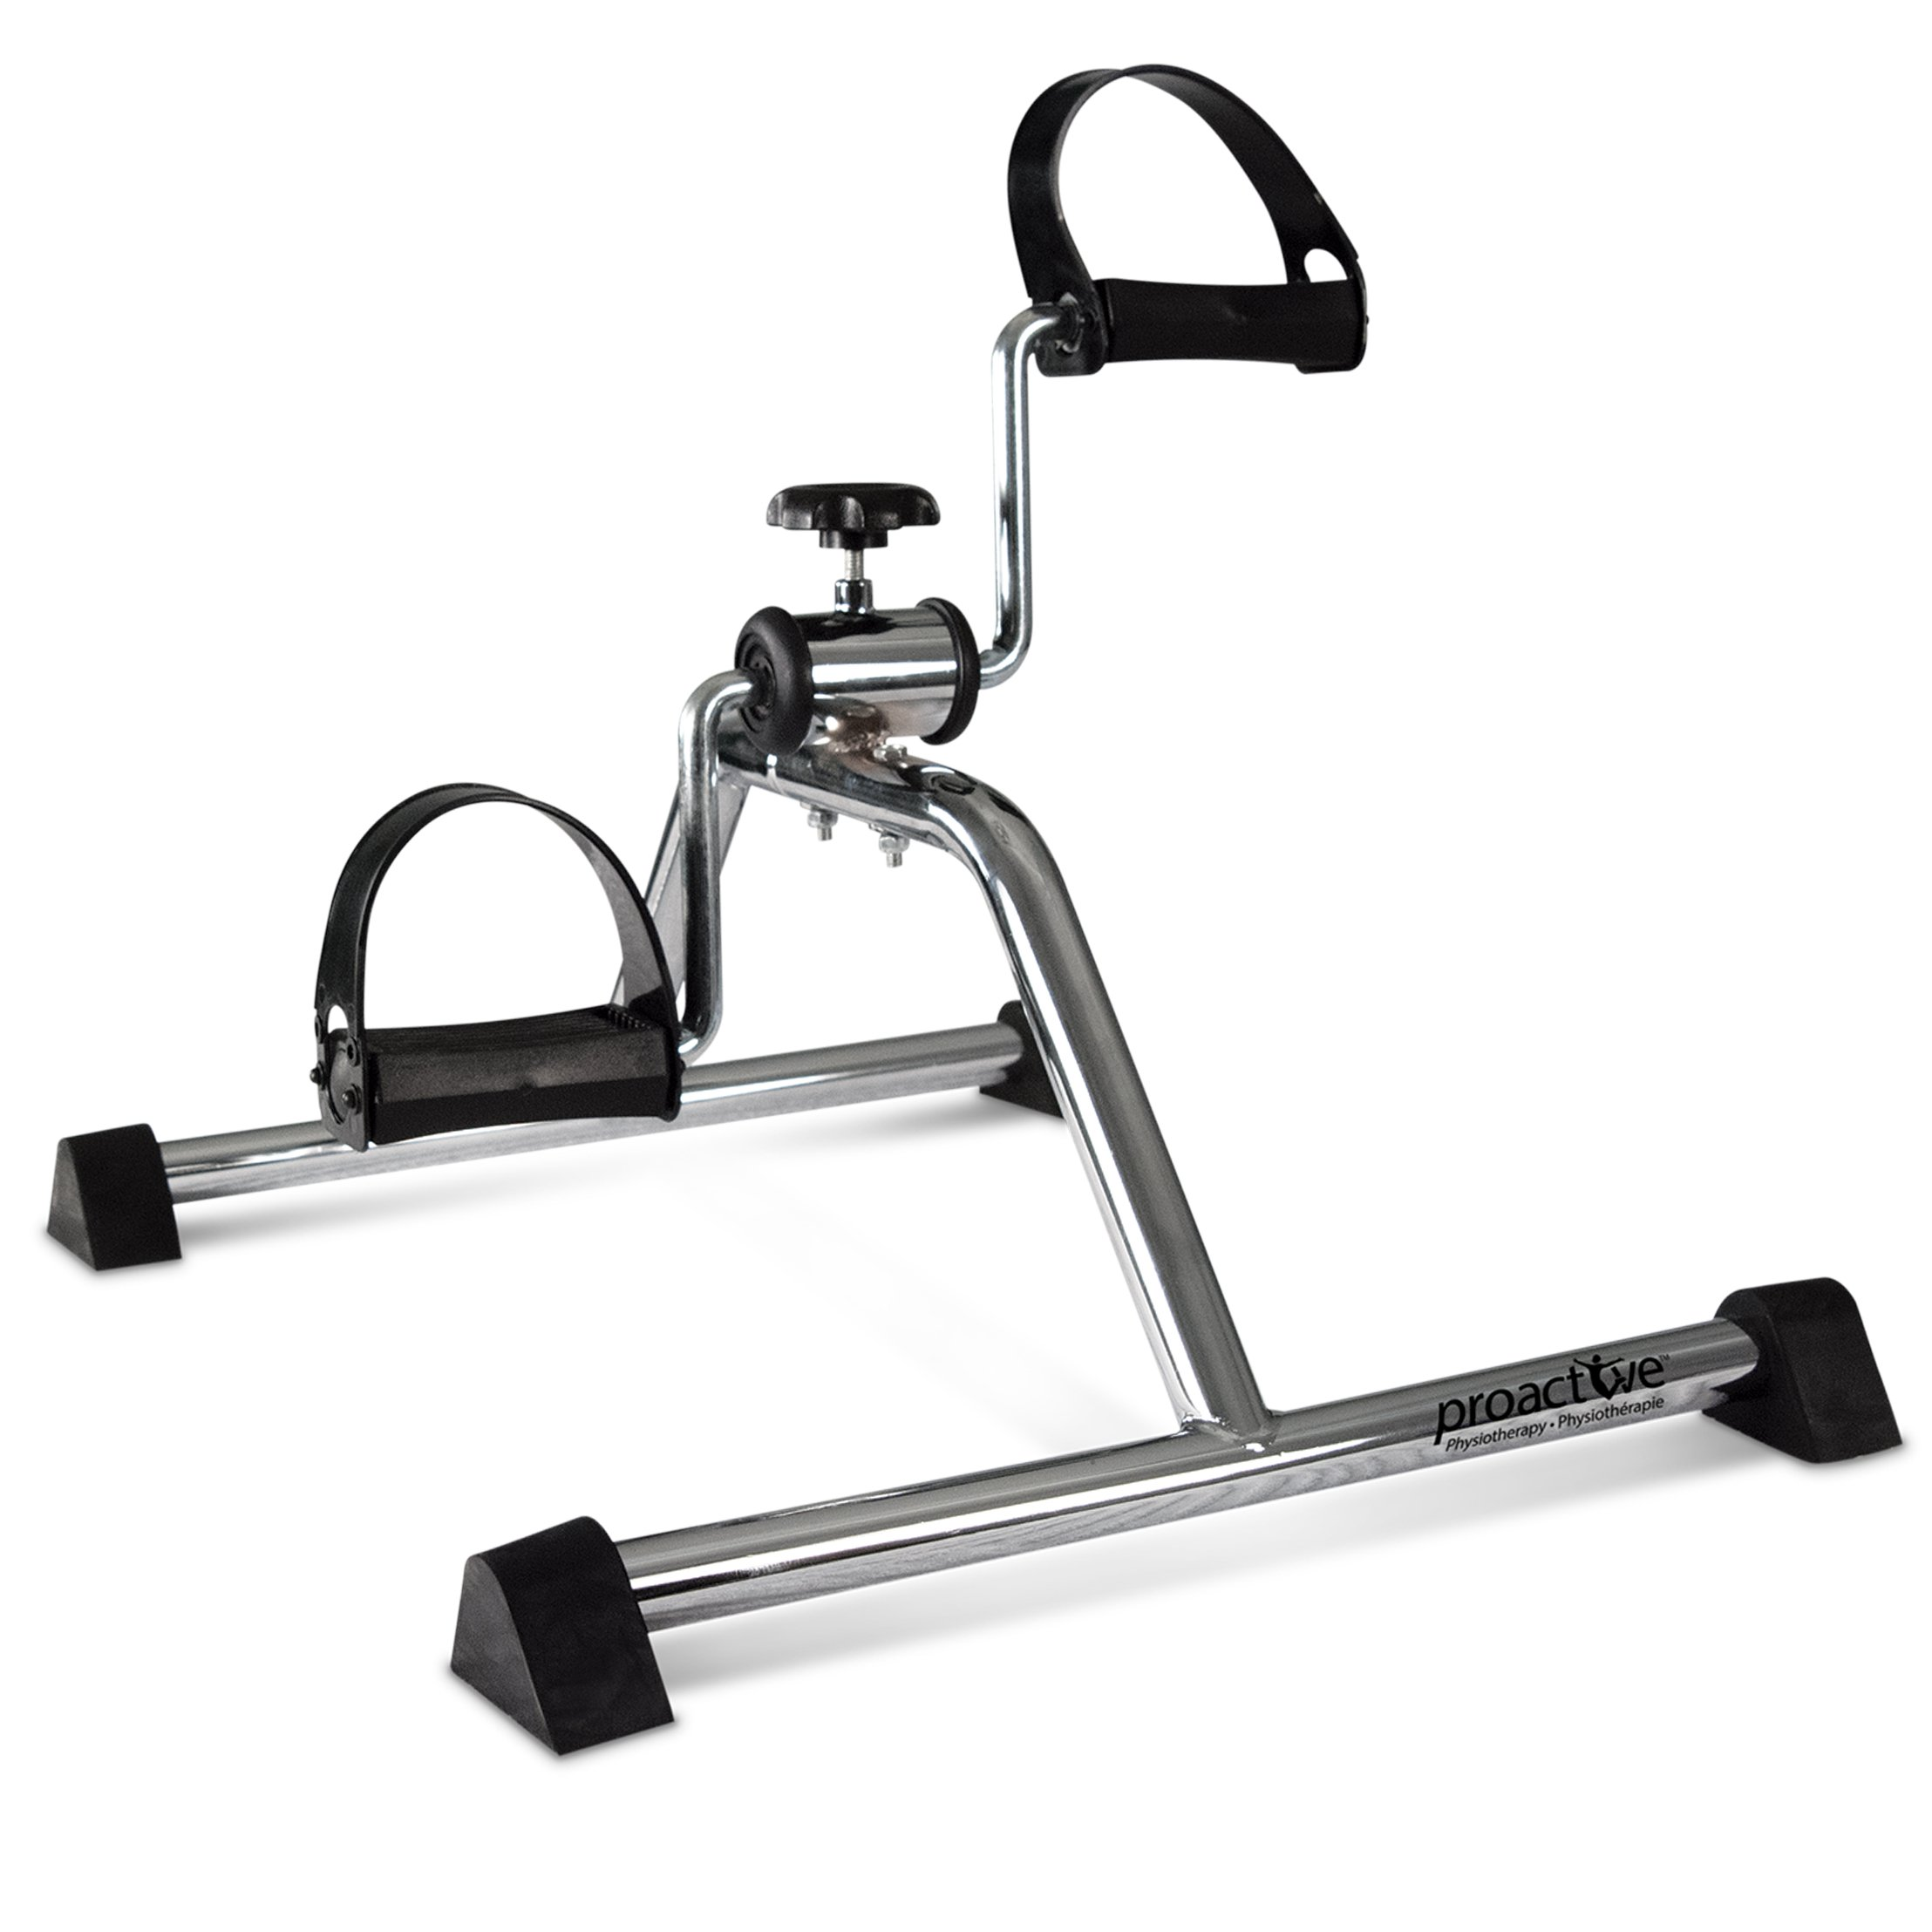 ProActive Compact and Portable Stationary Pedal Exerciser